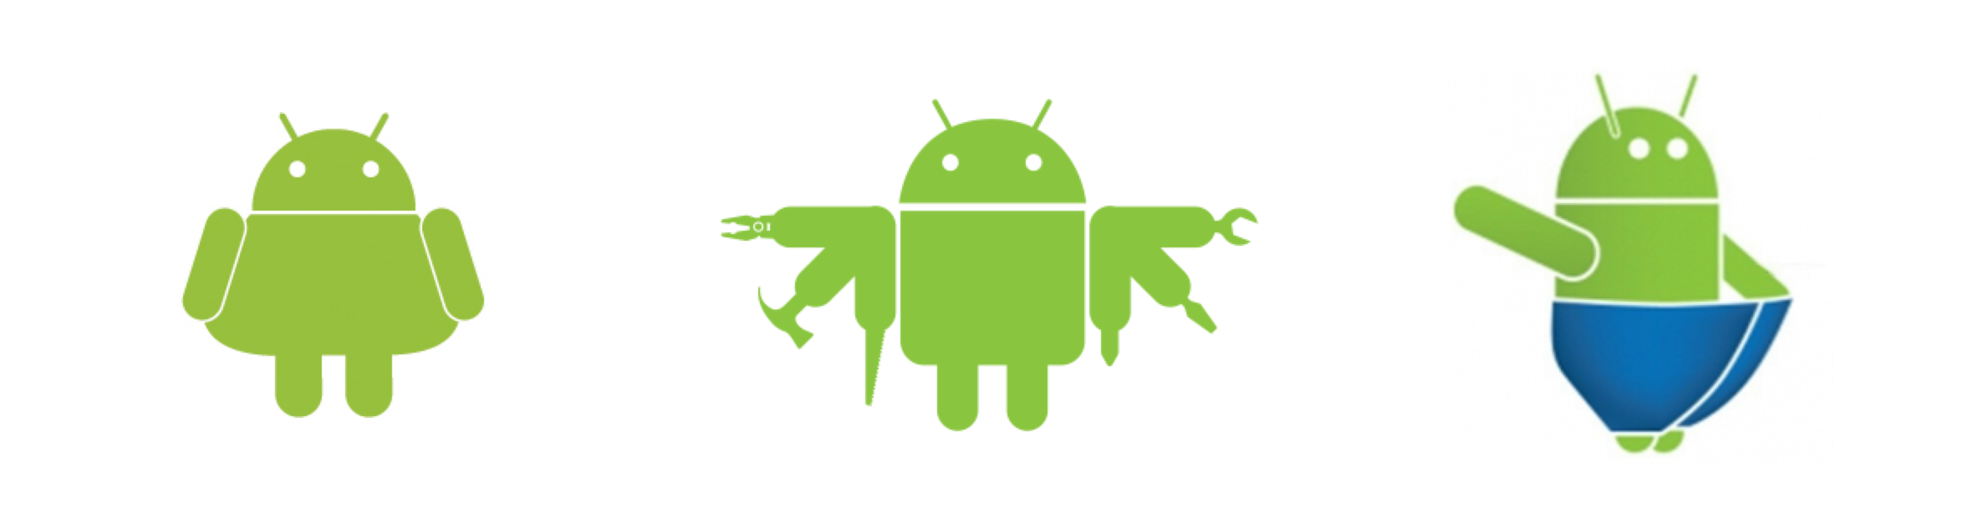 Tips to Reduce Your Android APK Size - AndroidPub